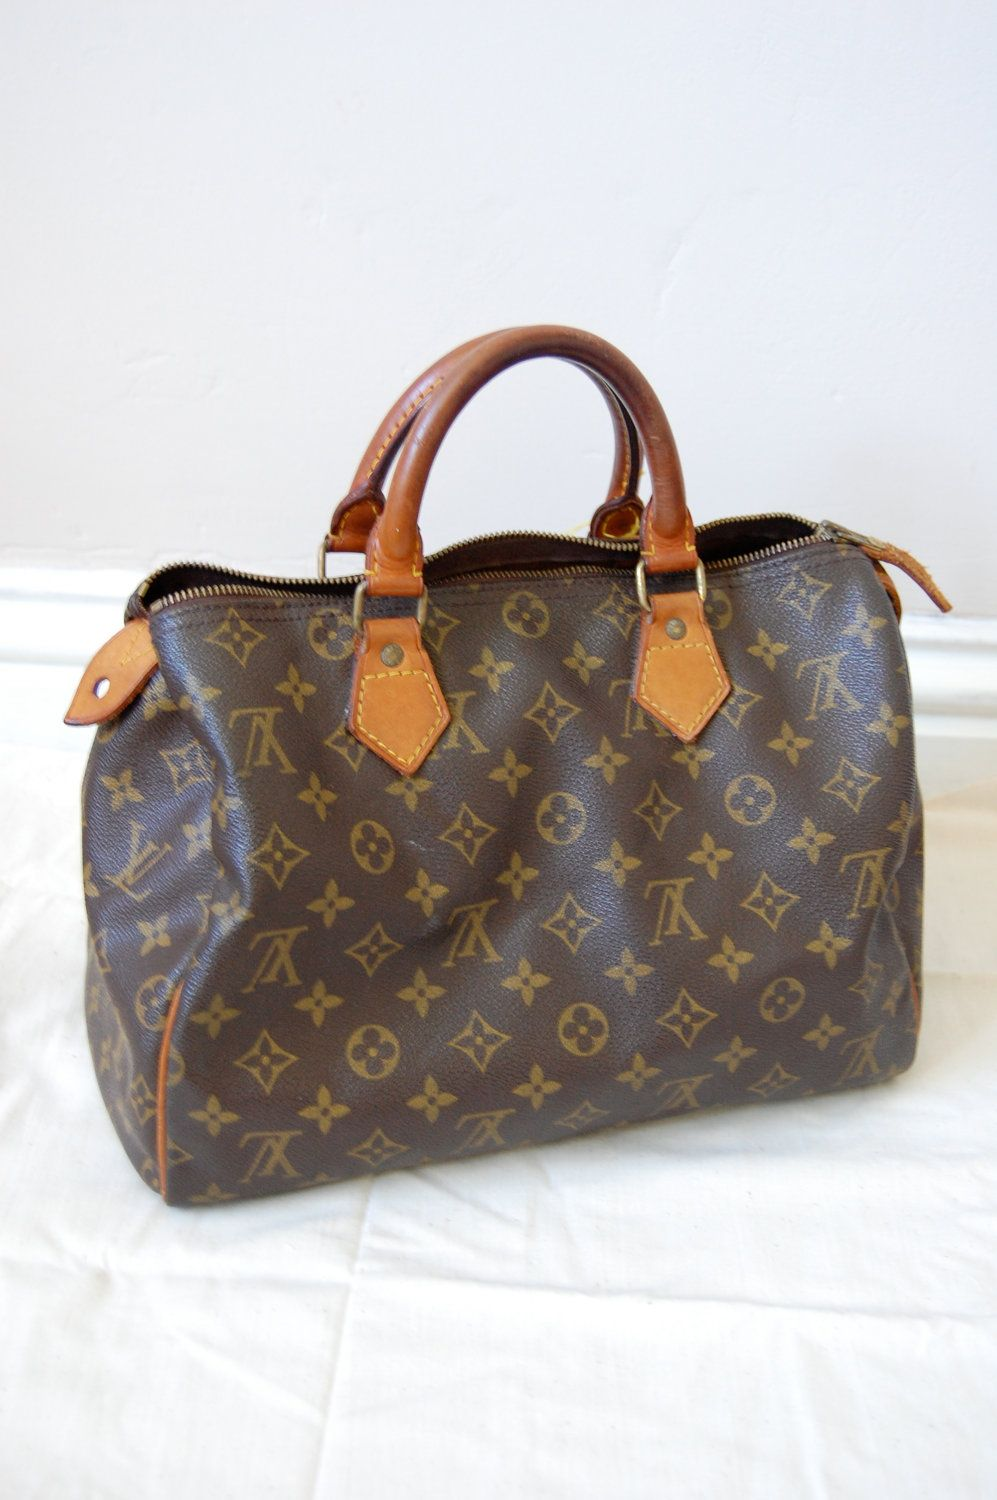 18a1fc55214b8 Vintage Authentic Louis Vuitton Speedy 30 Handbag Purse Tote Shoulder Bag LV